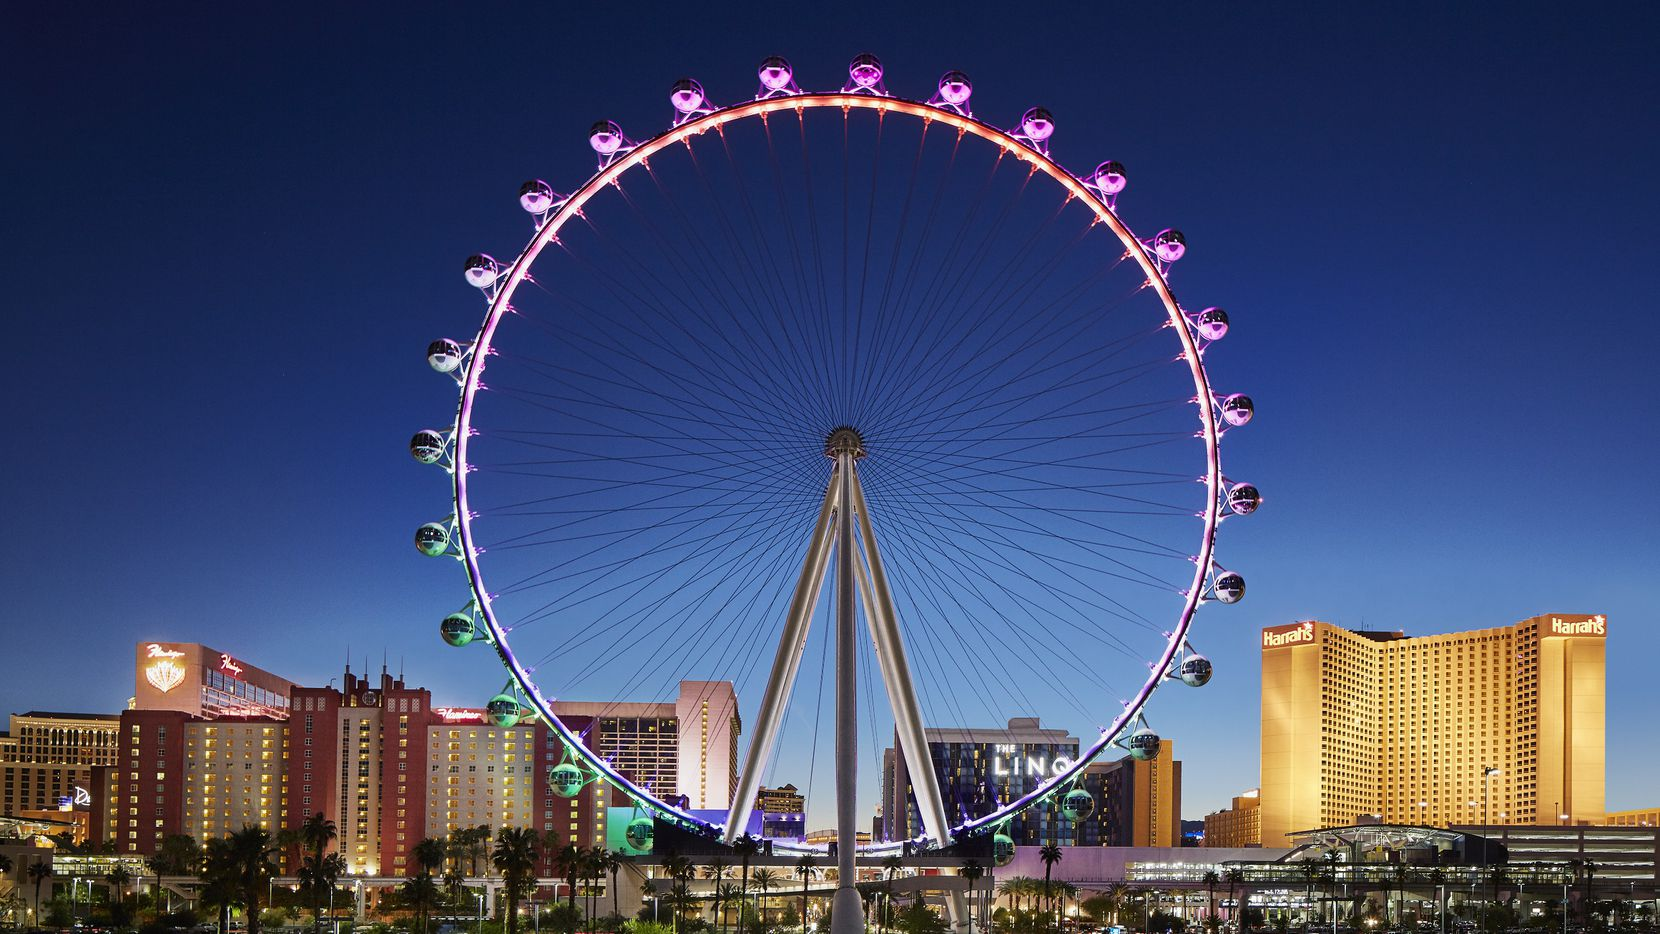 The business side of the NFL Draft will take place near the High Roller and the new Caesars Forum, adjacent to the observation wheel.